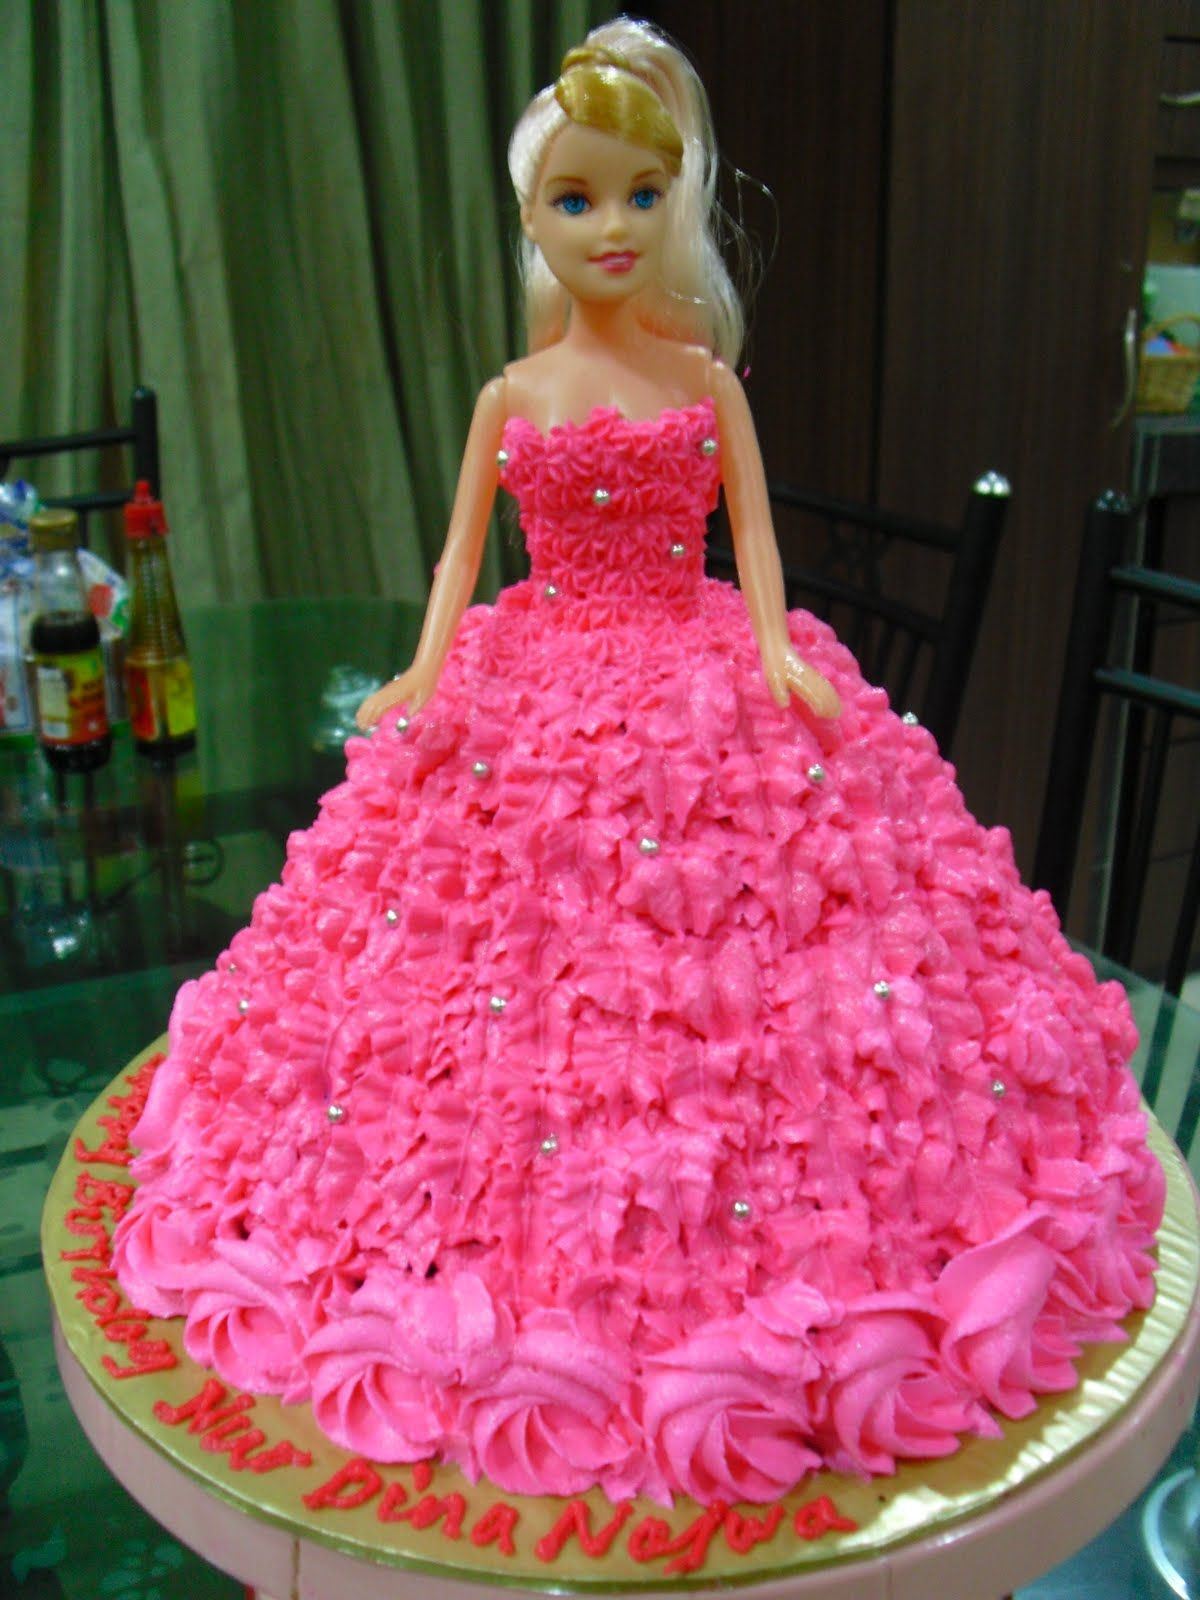 Barbie Doll Cake Barbie Doll For The Bday Girl Crafts For Kids